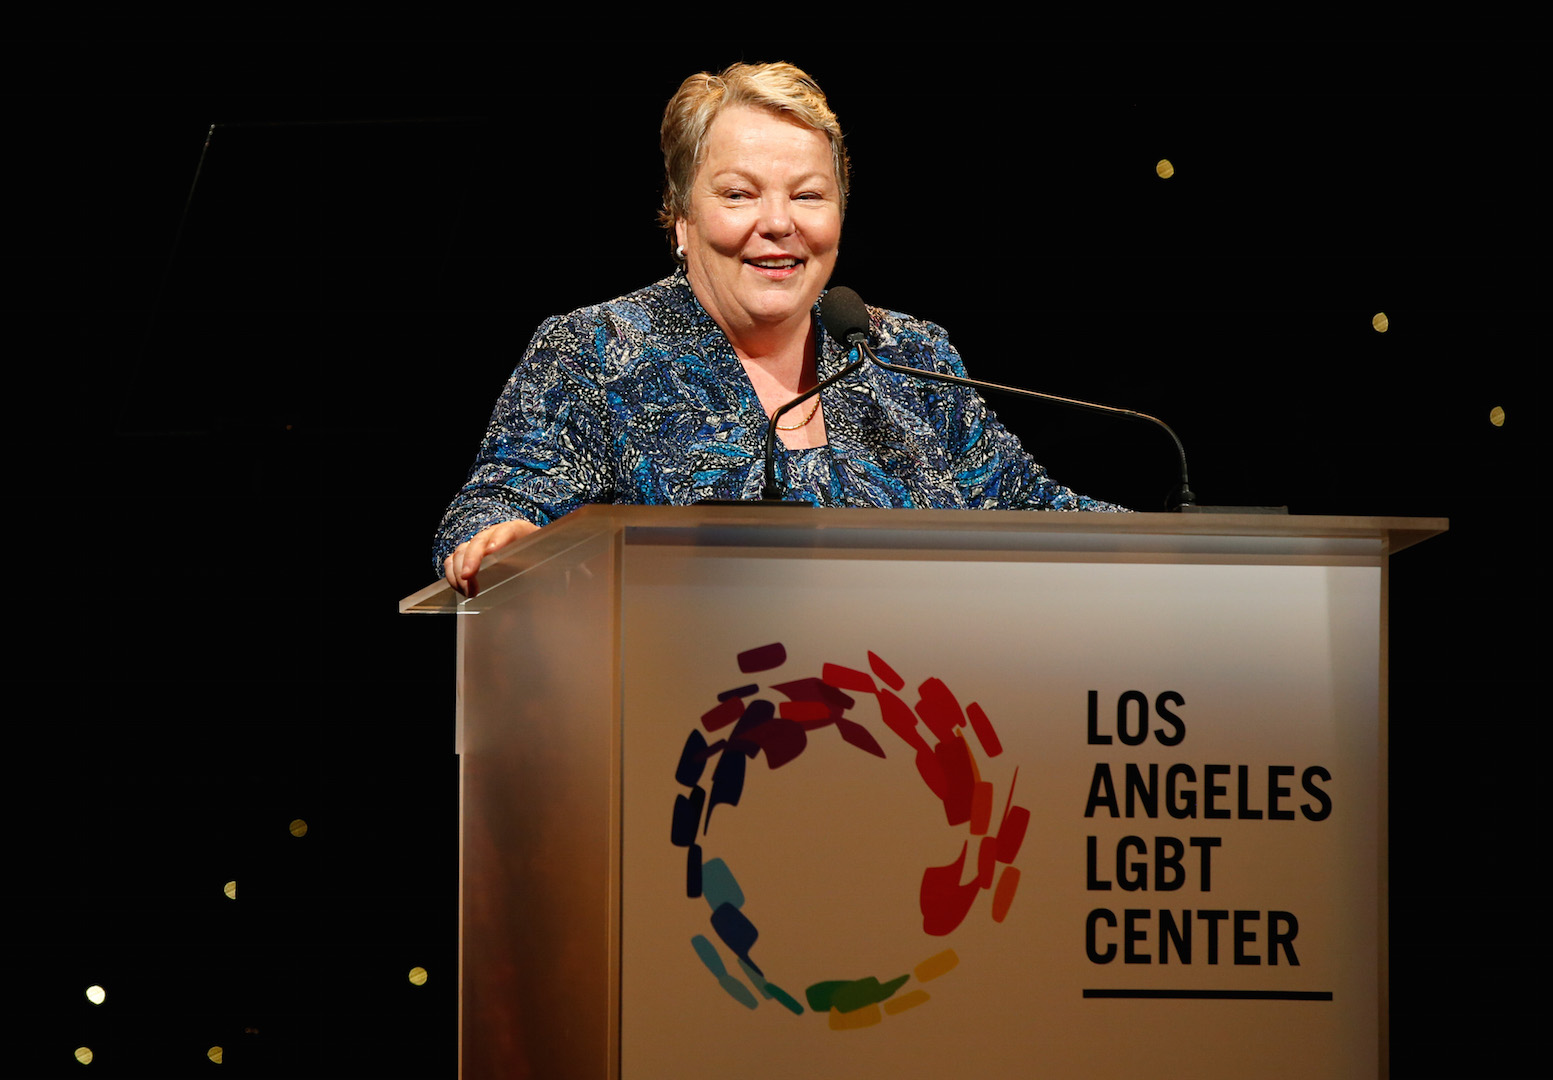 CENTURY CITY, CA - NOVEMBER 07:  Los Angeles LGBT Center CEO Lorri L. Jean speaks onstage at the Los Angeles LGBT Center 46th Anniversary Gala Vanguard Awards at the Hyatt Regency Century Plaza on November 7, 2015 in Century City, California.  (Photo by Joe Scarnici/Getty Images for Los Angeles LGBT Center)